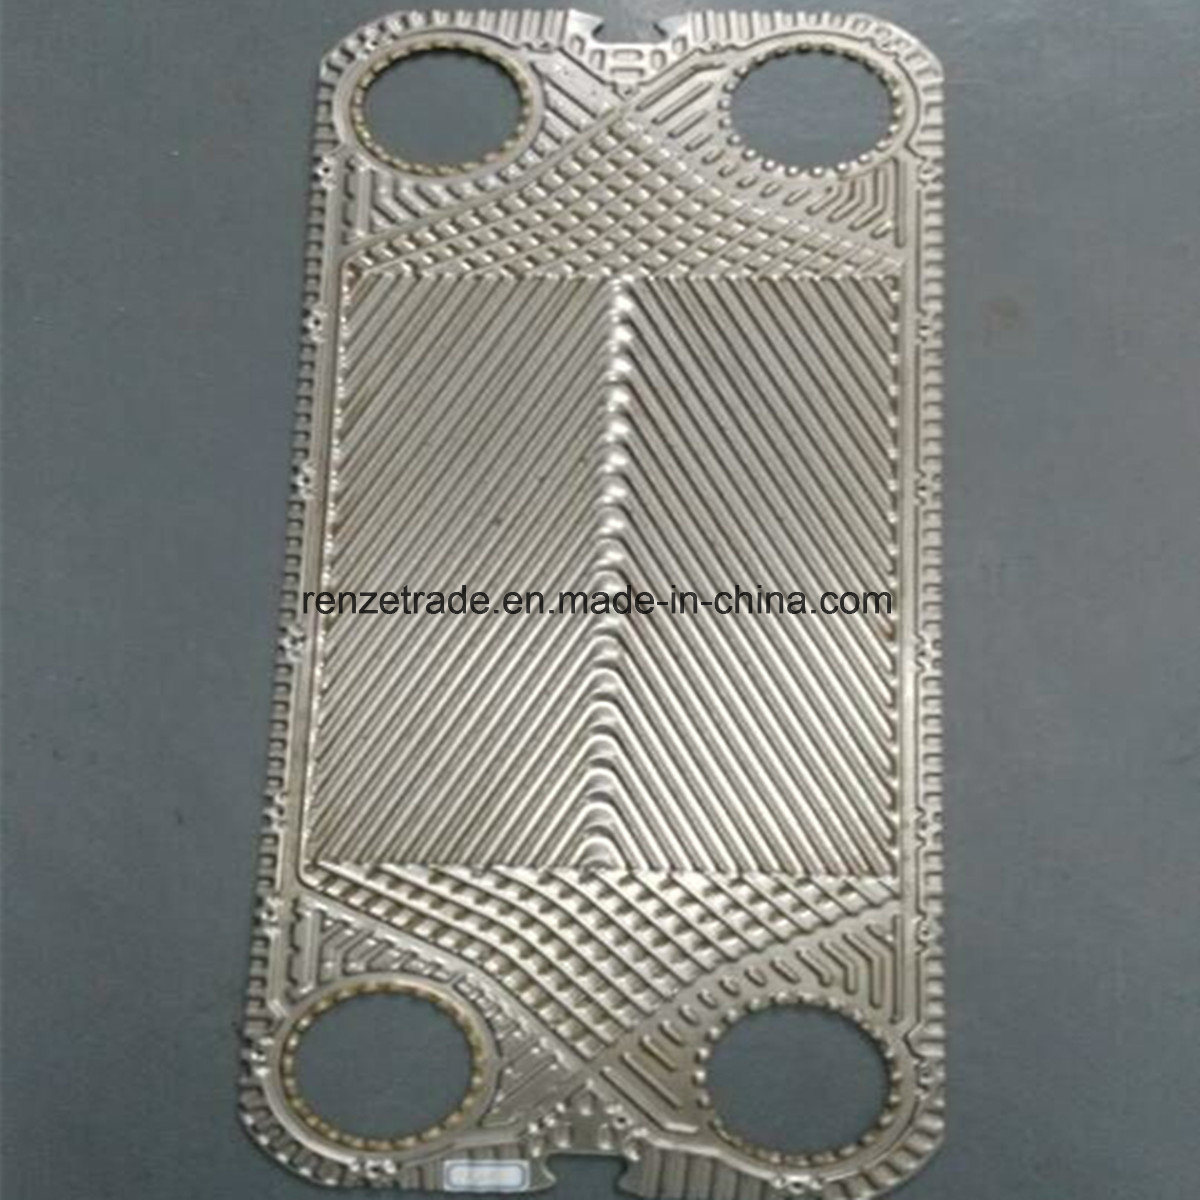 AISI304, AISI316L, Titanium 0.5mm, 0.6mm Plate for Gasketed Plate Heat Exchanger